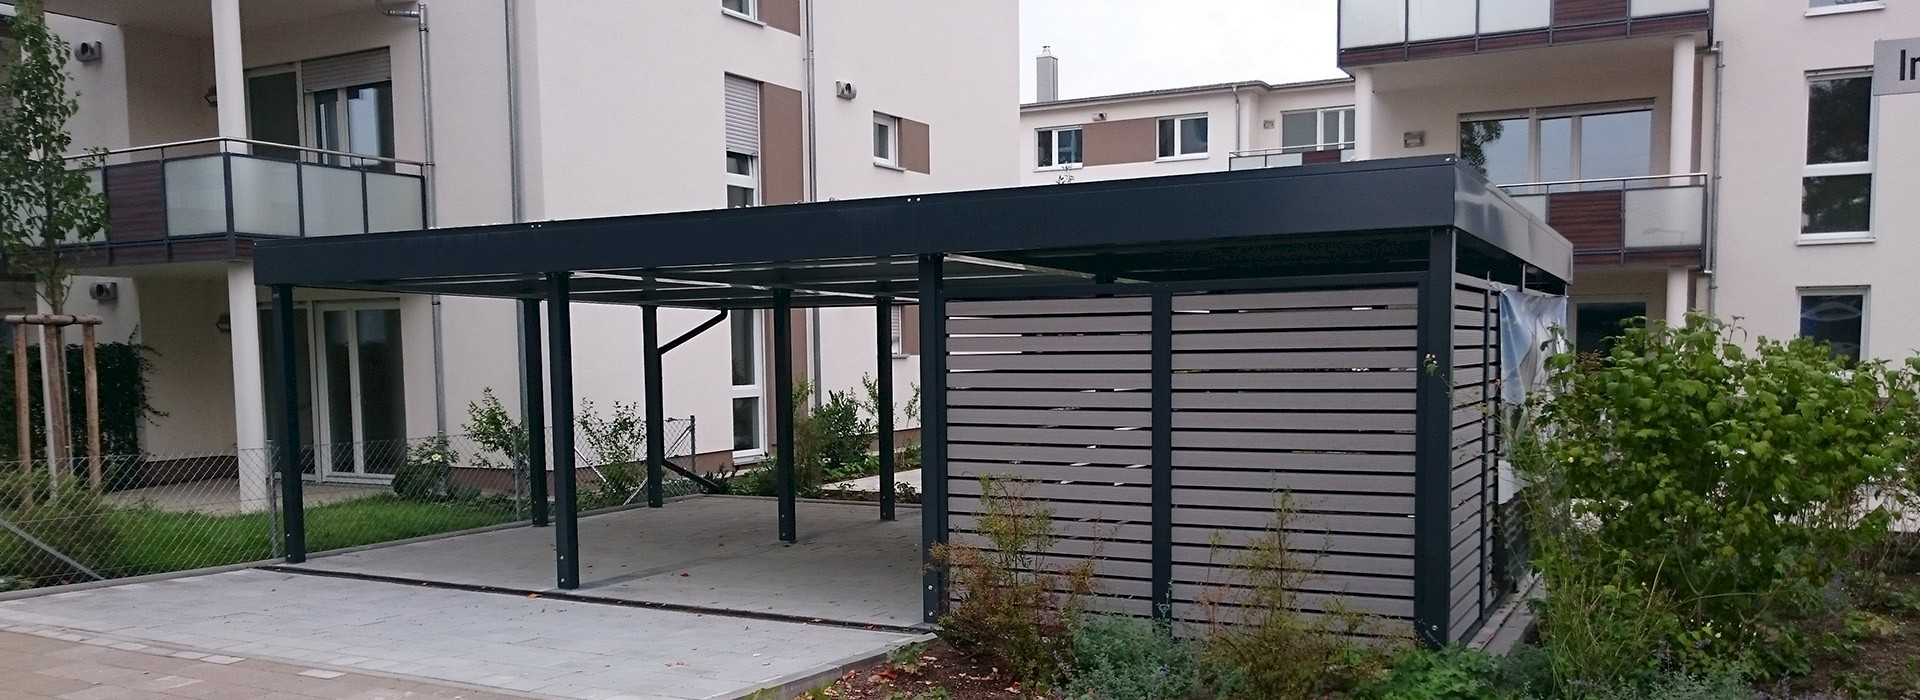 design garage moderne garage oder designer carport kaufen infos. Black Bedroom Furniture Sets. Home Design Ideas